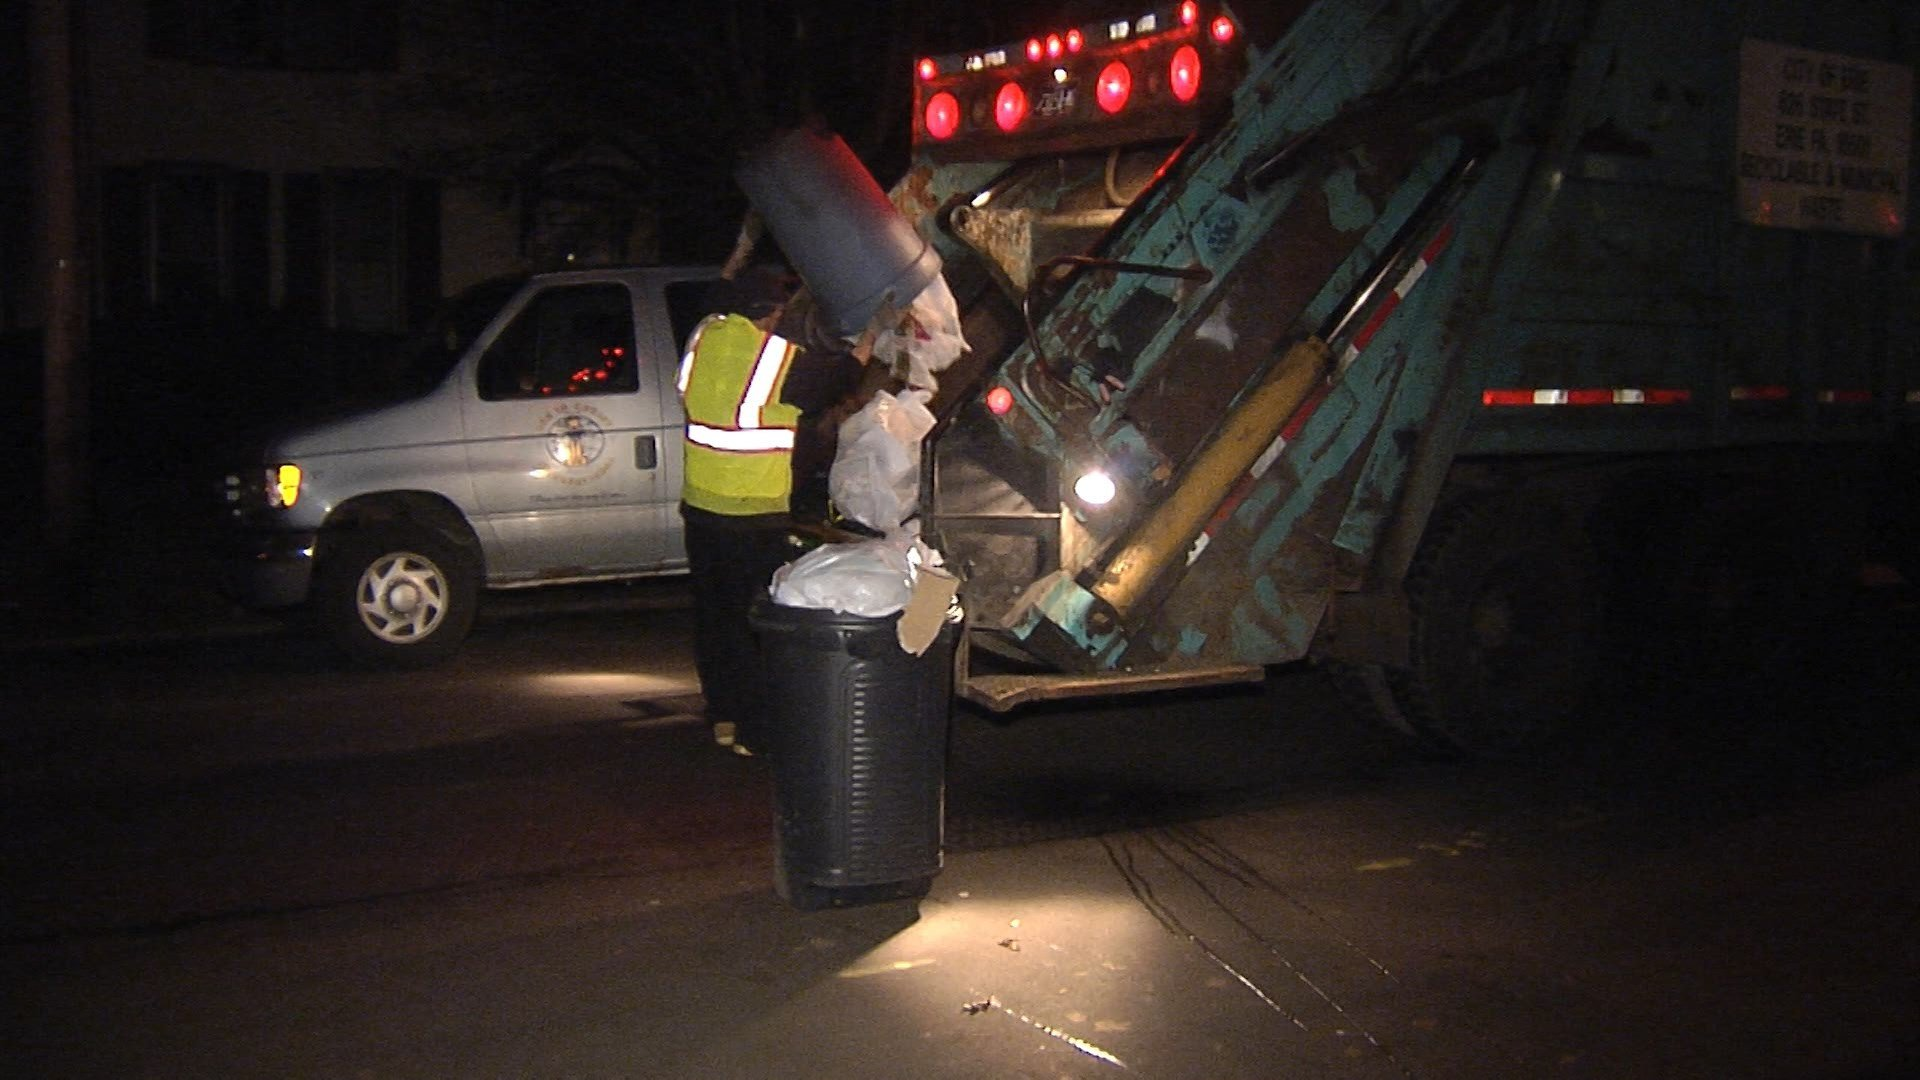 2021 Erie Christmas Garbage Pickup Schedule Trash Pickup Delayed For Some Residents Due To Holidays Erie News Now Wicu And Wsee In Erie Pa